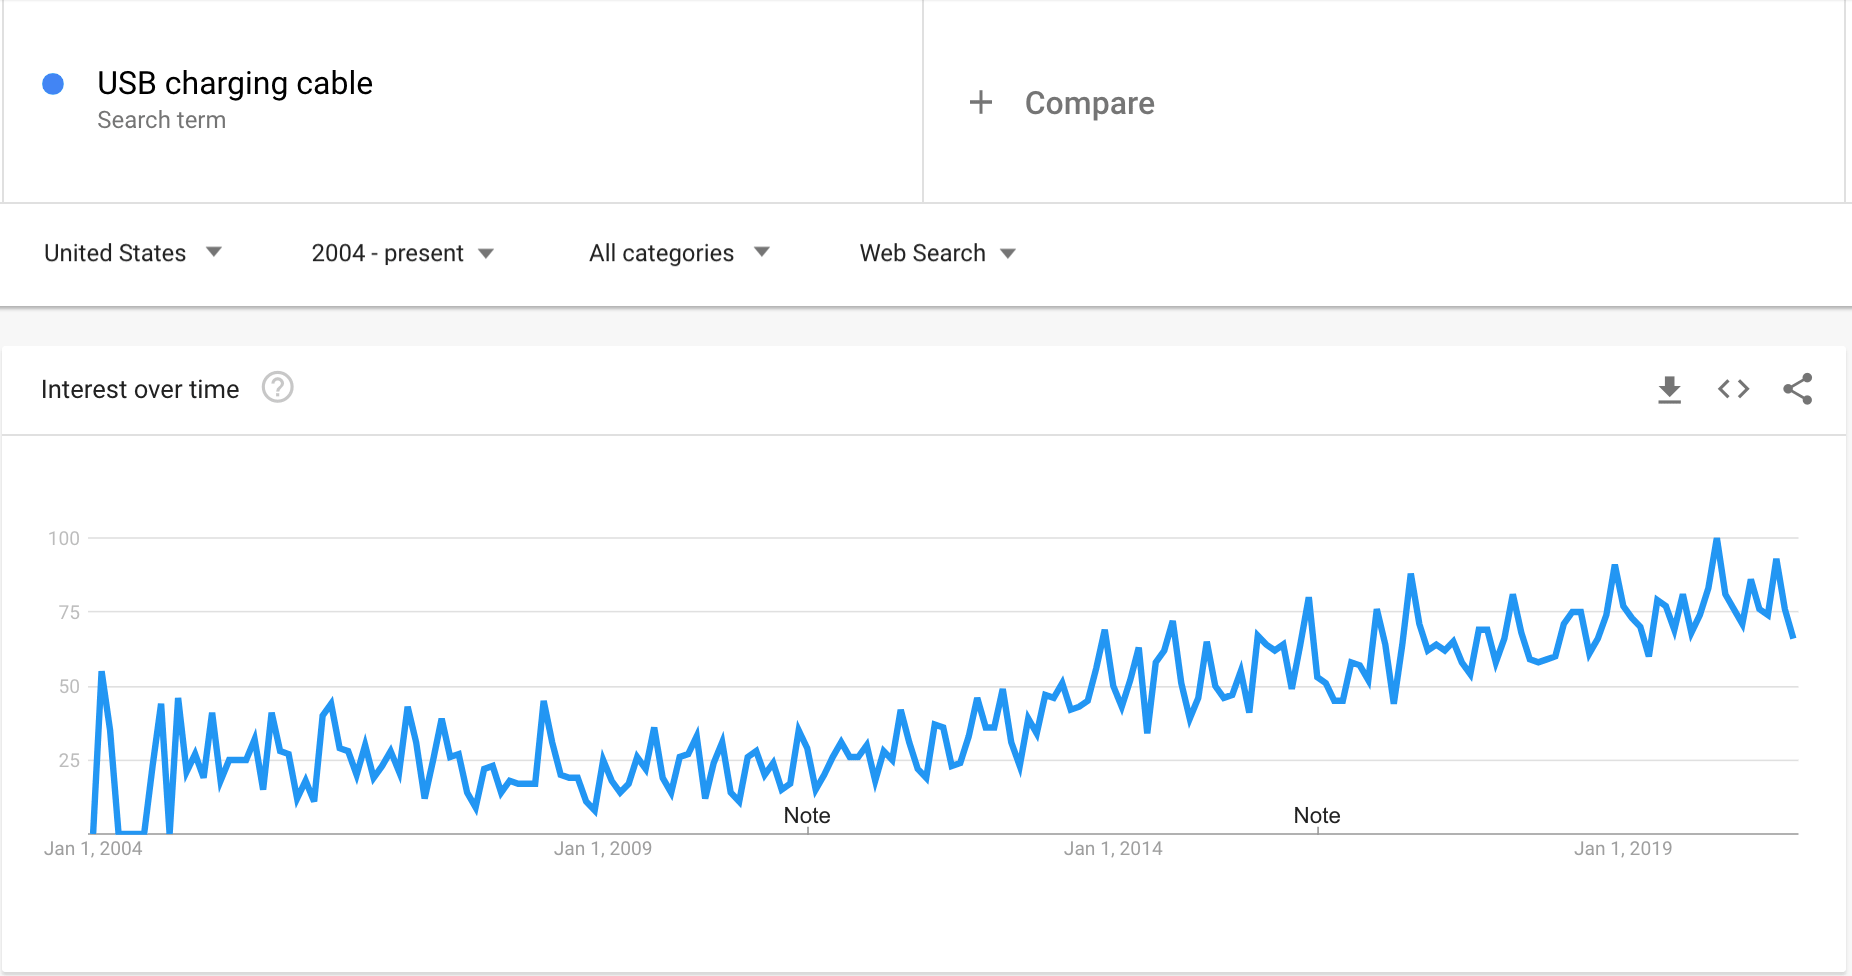 Google Trends graph showing the interest in USB charging cables